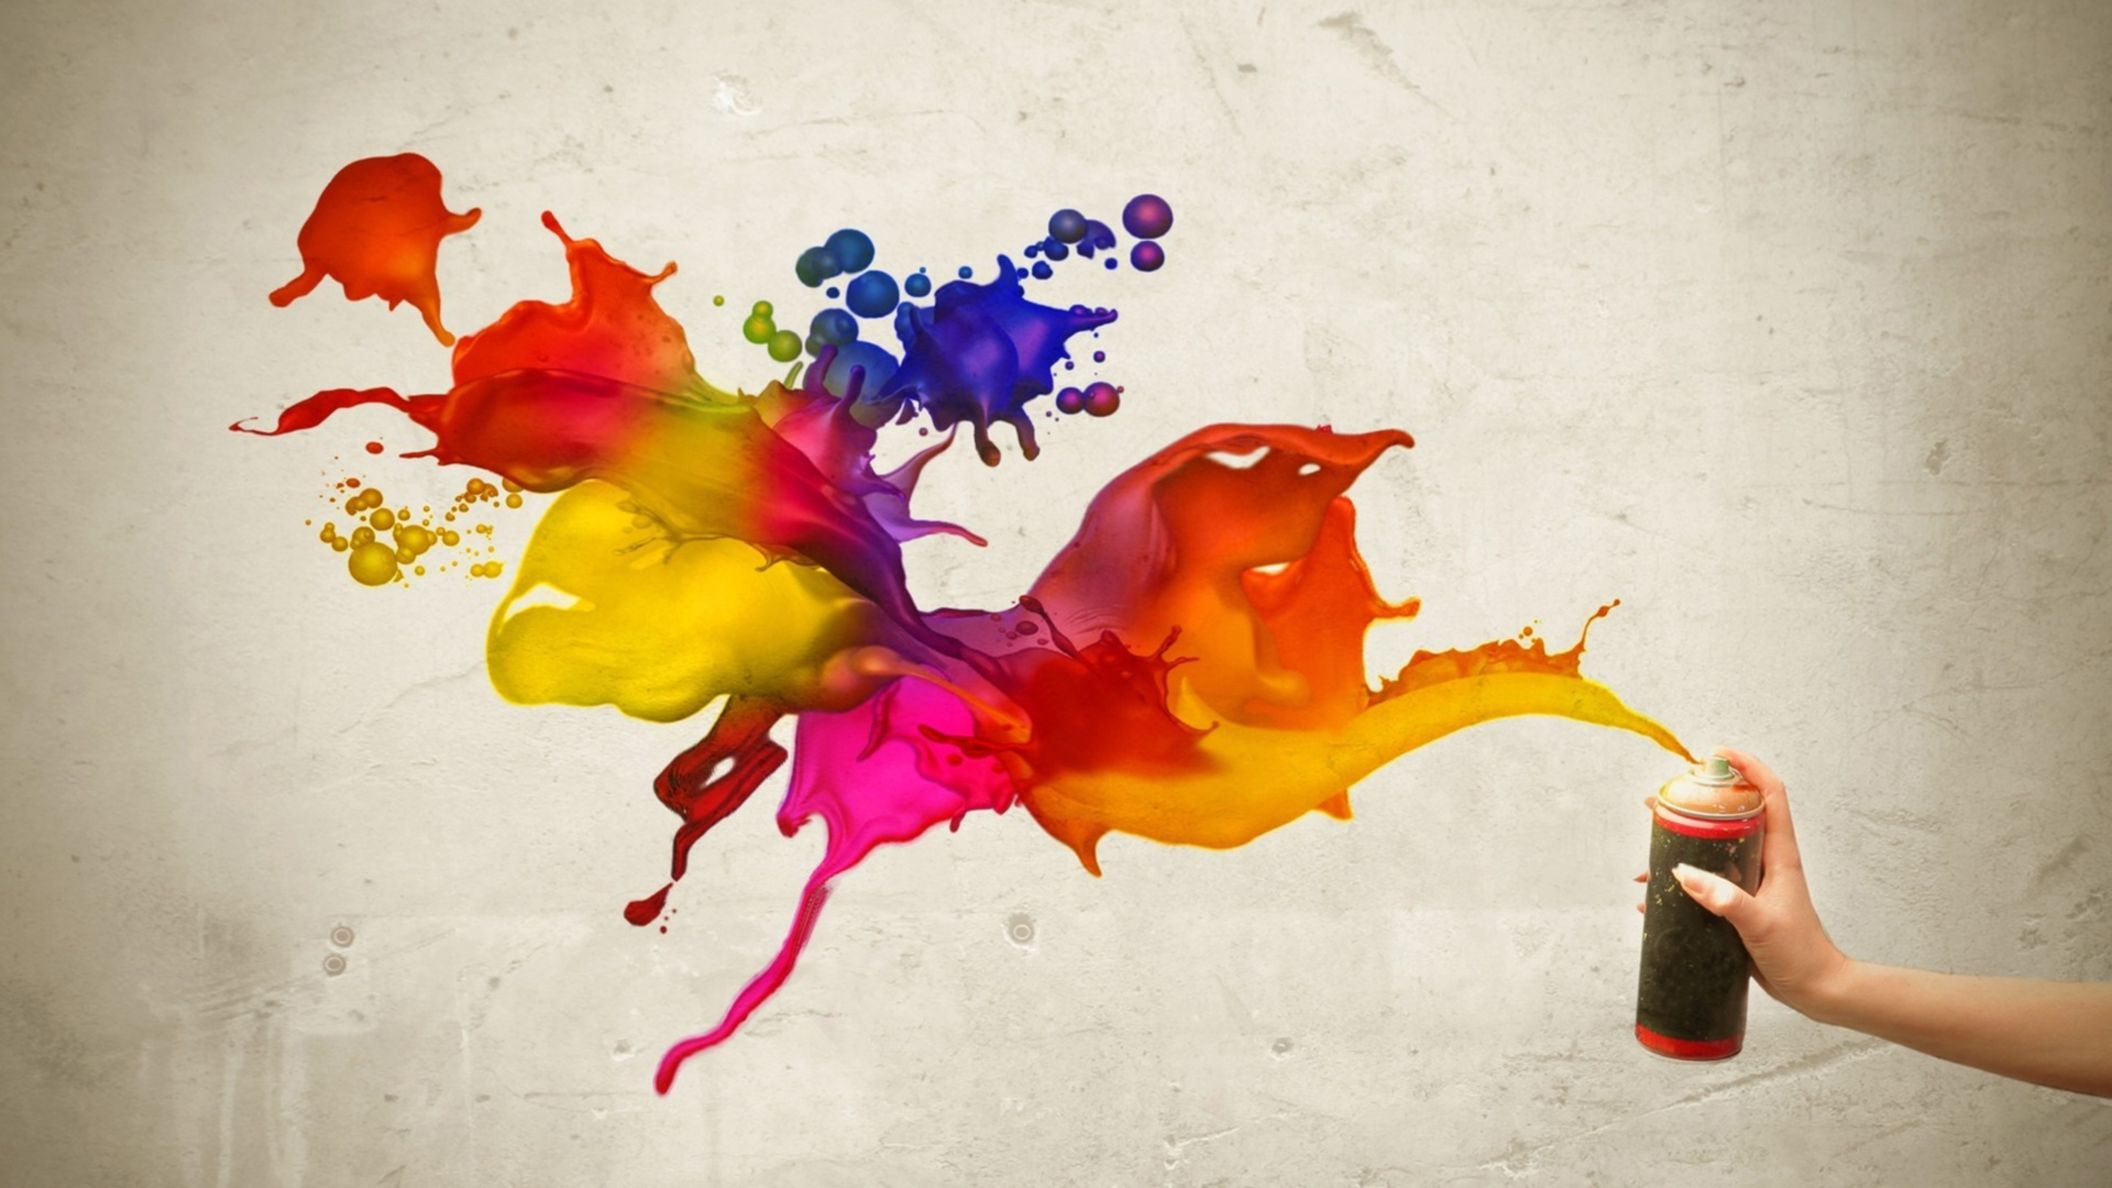 Download free HD Colorful Art Paint Wallpaper, image